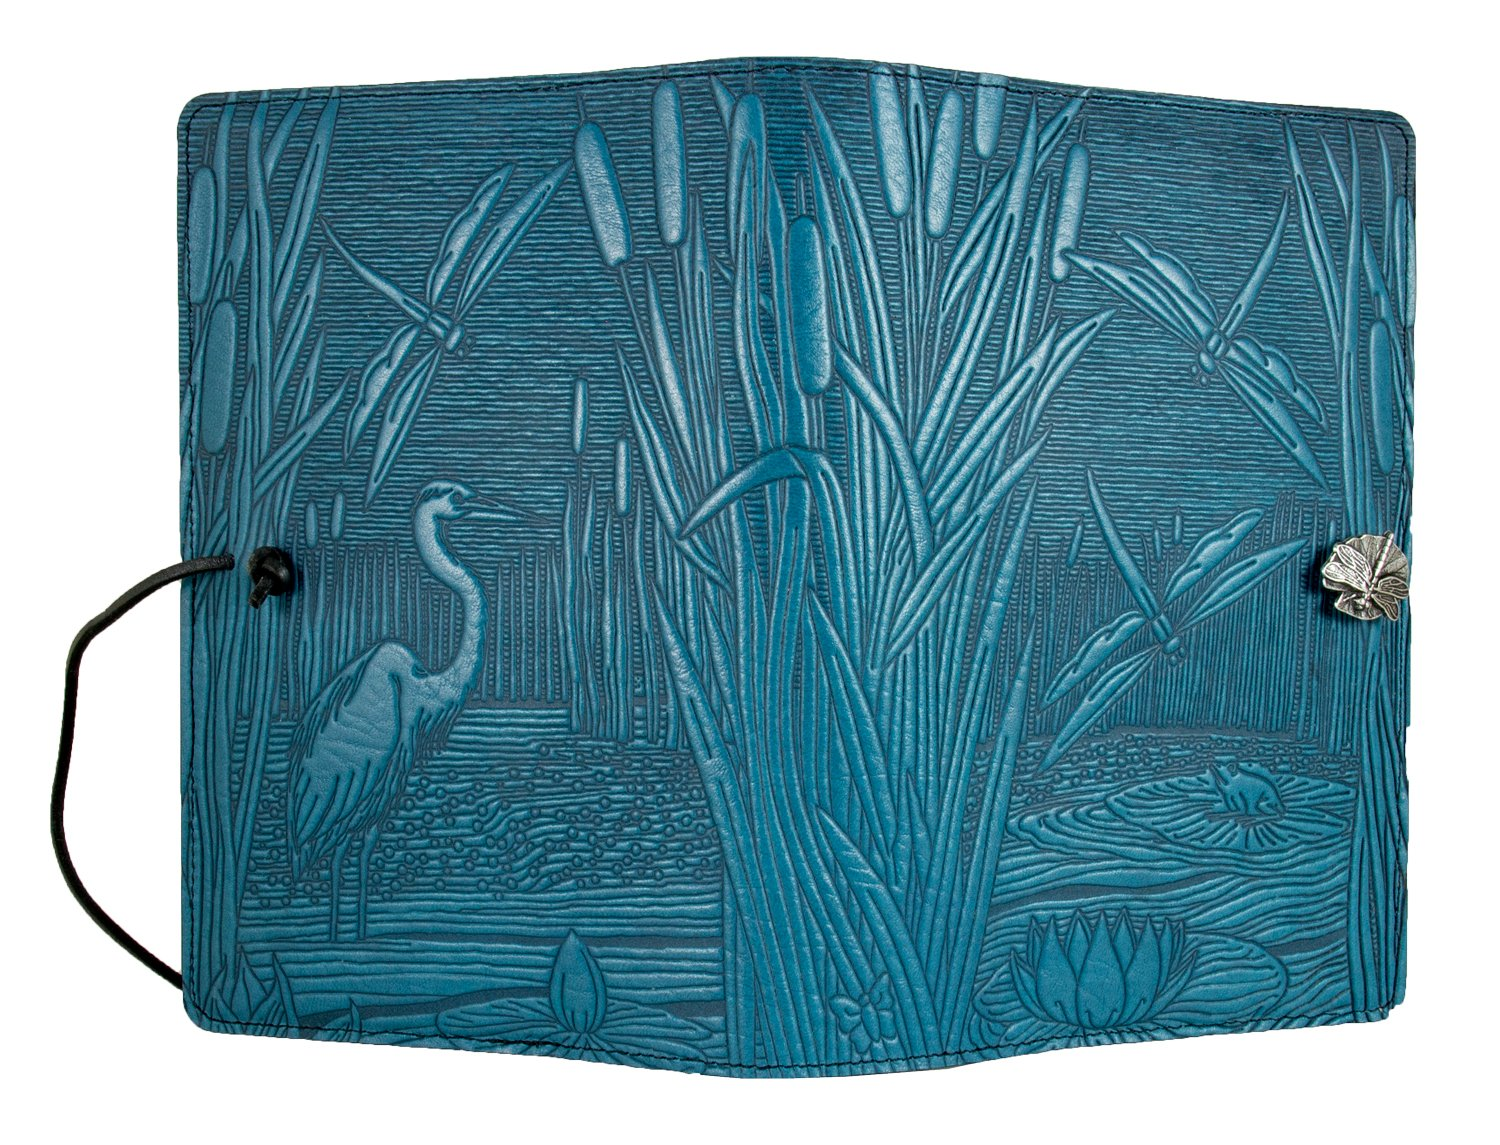 Genuine Leather Refillable Journal Cover + Hardbound Blank Insert - 6x9 Inches - Dragonfly Pond, Sky Blue With Pewter Button - Made in the USA by Oberon Design by Oberon Design (Image #3)